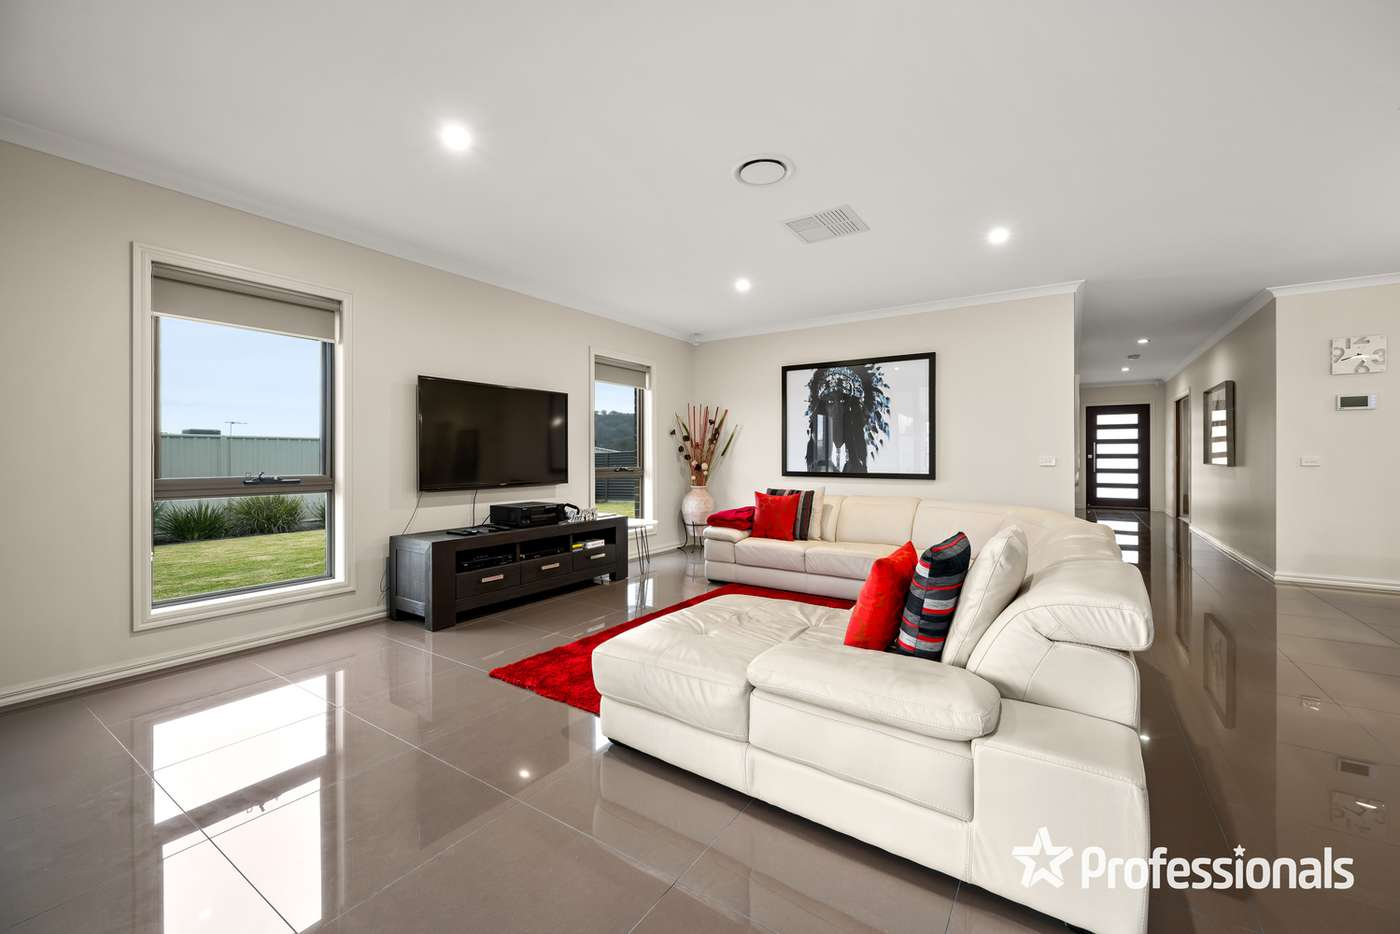 Fifth view of Homely house listing, 27 Cleeland Court, Wodonga VIC 3690